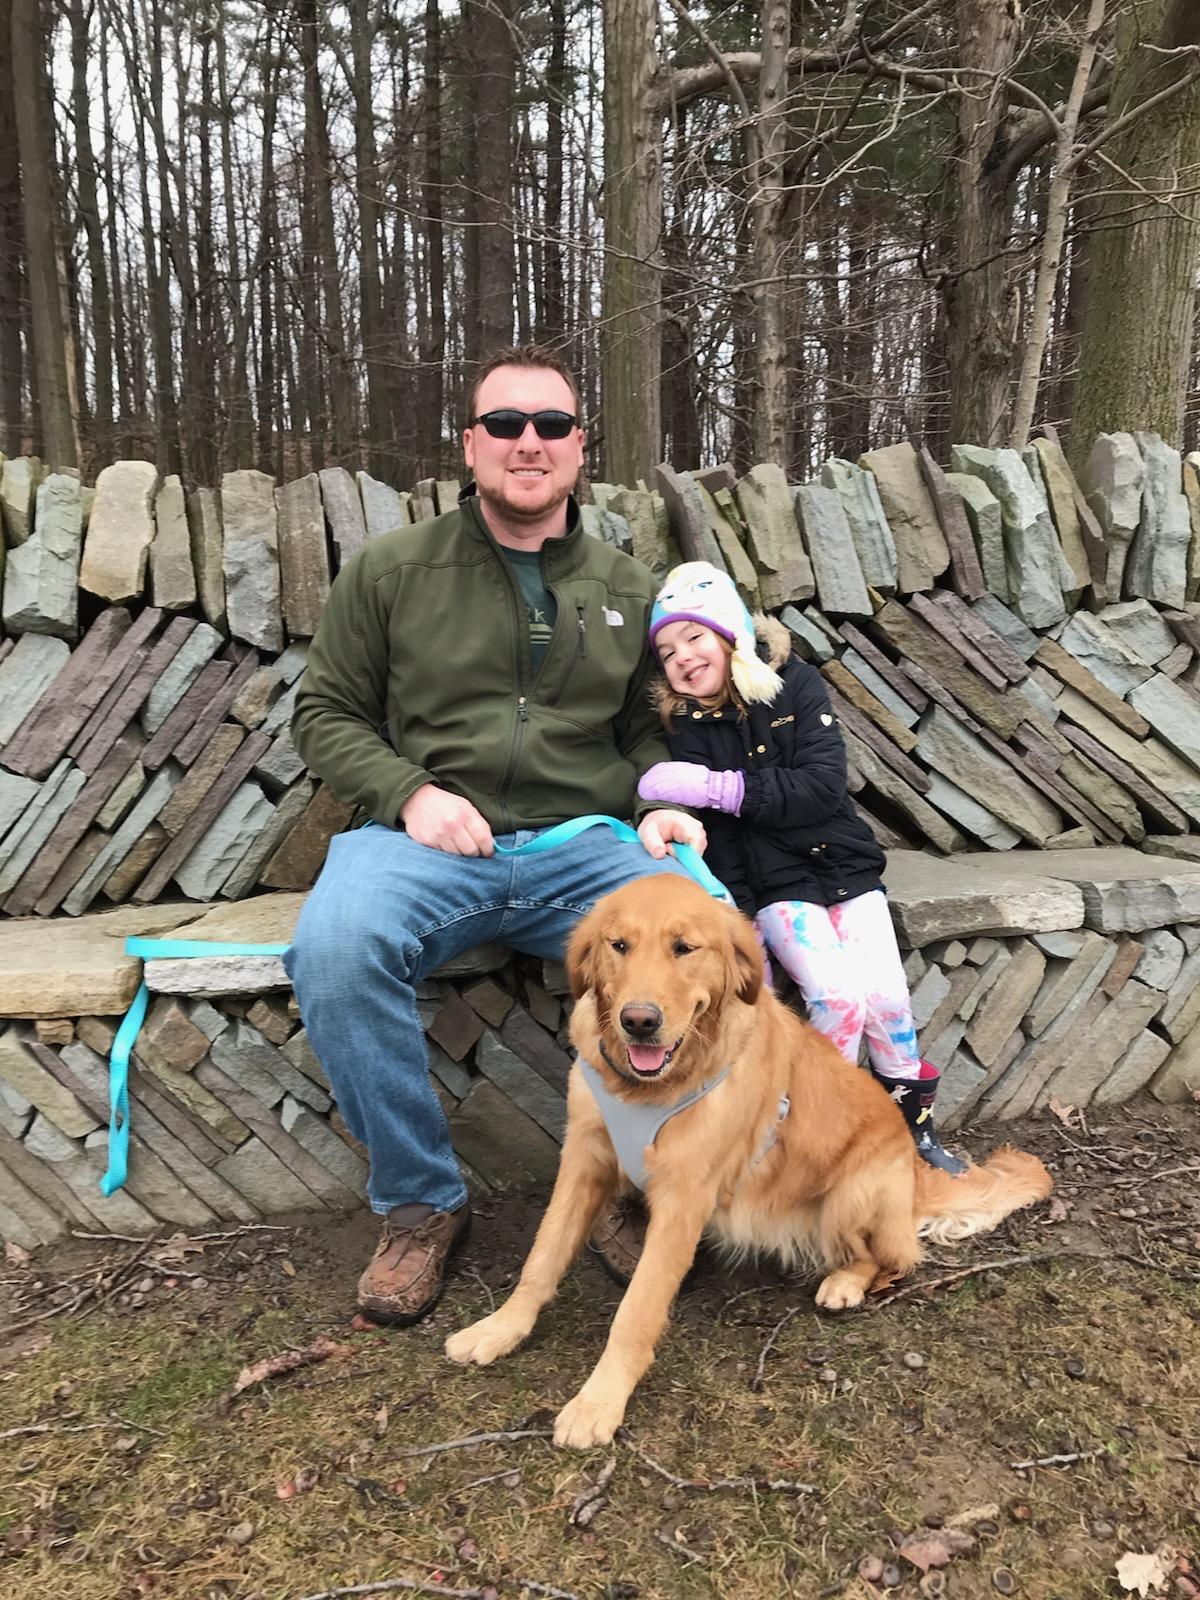 Jake, his daughter Harper and dog Molly visit the MacFarlane Trail at Zenda Farms Preserve